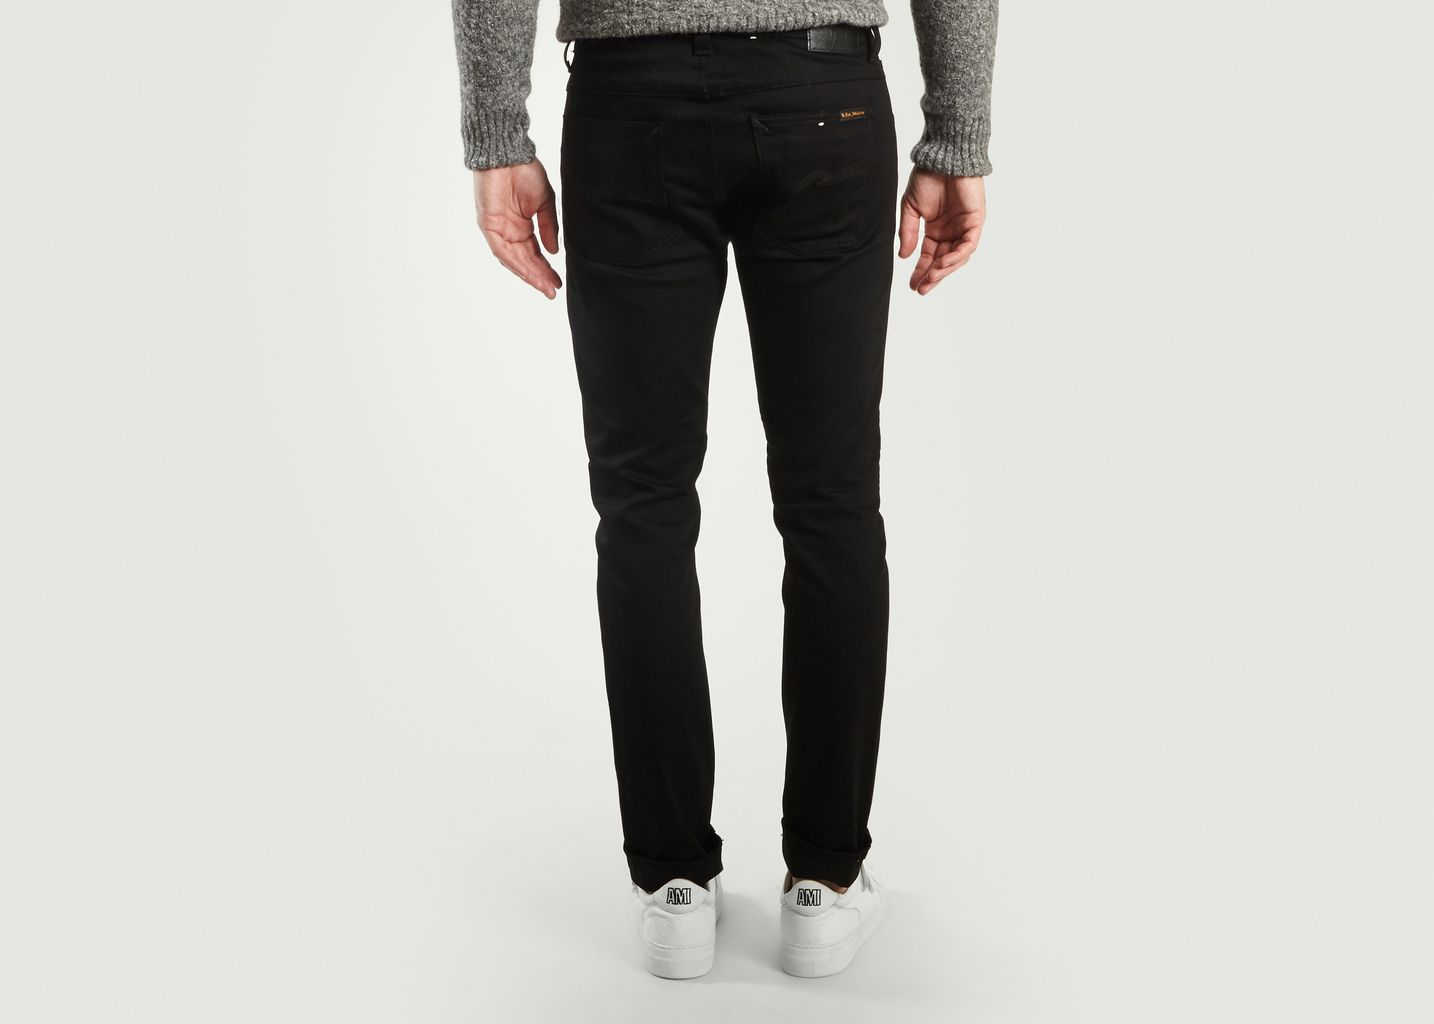 Jeans Tilted Tor Dry Cold - Nudie Jeans